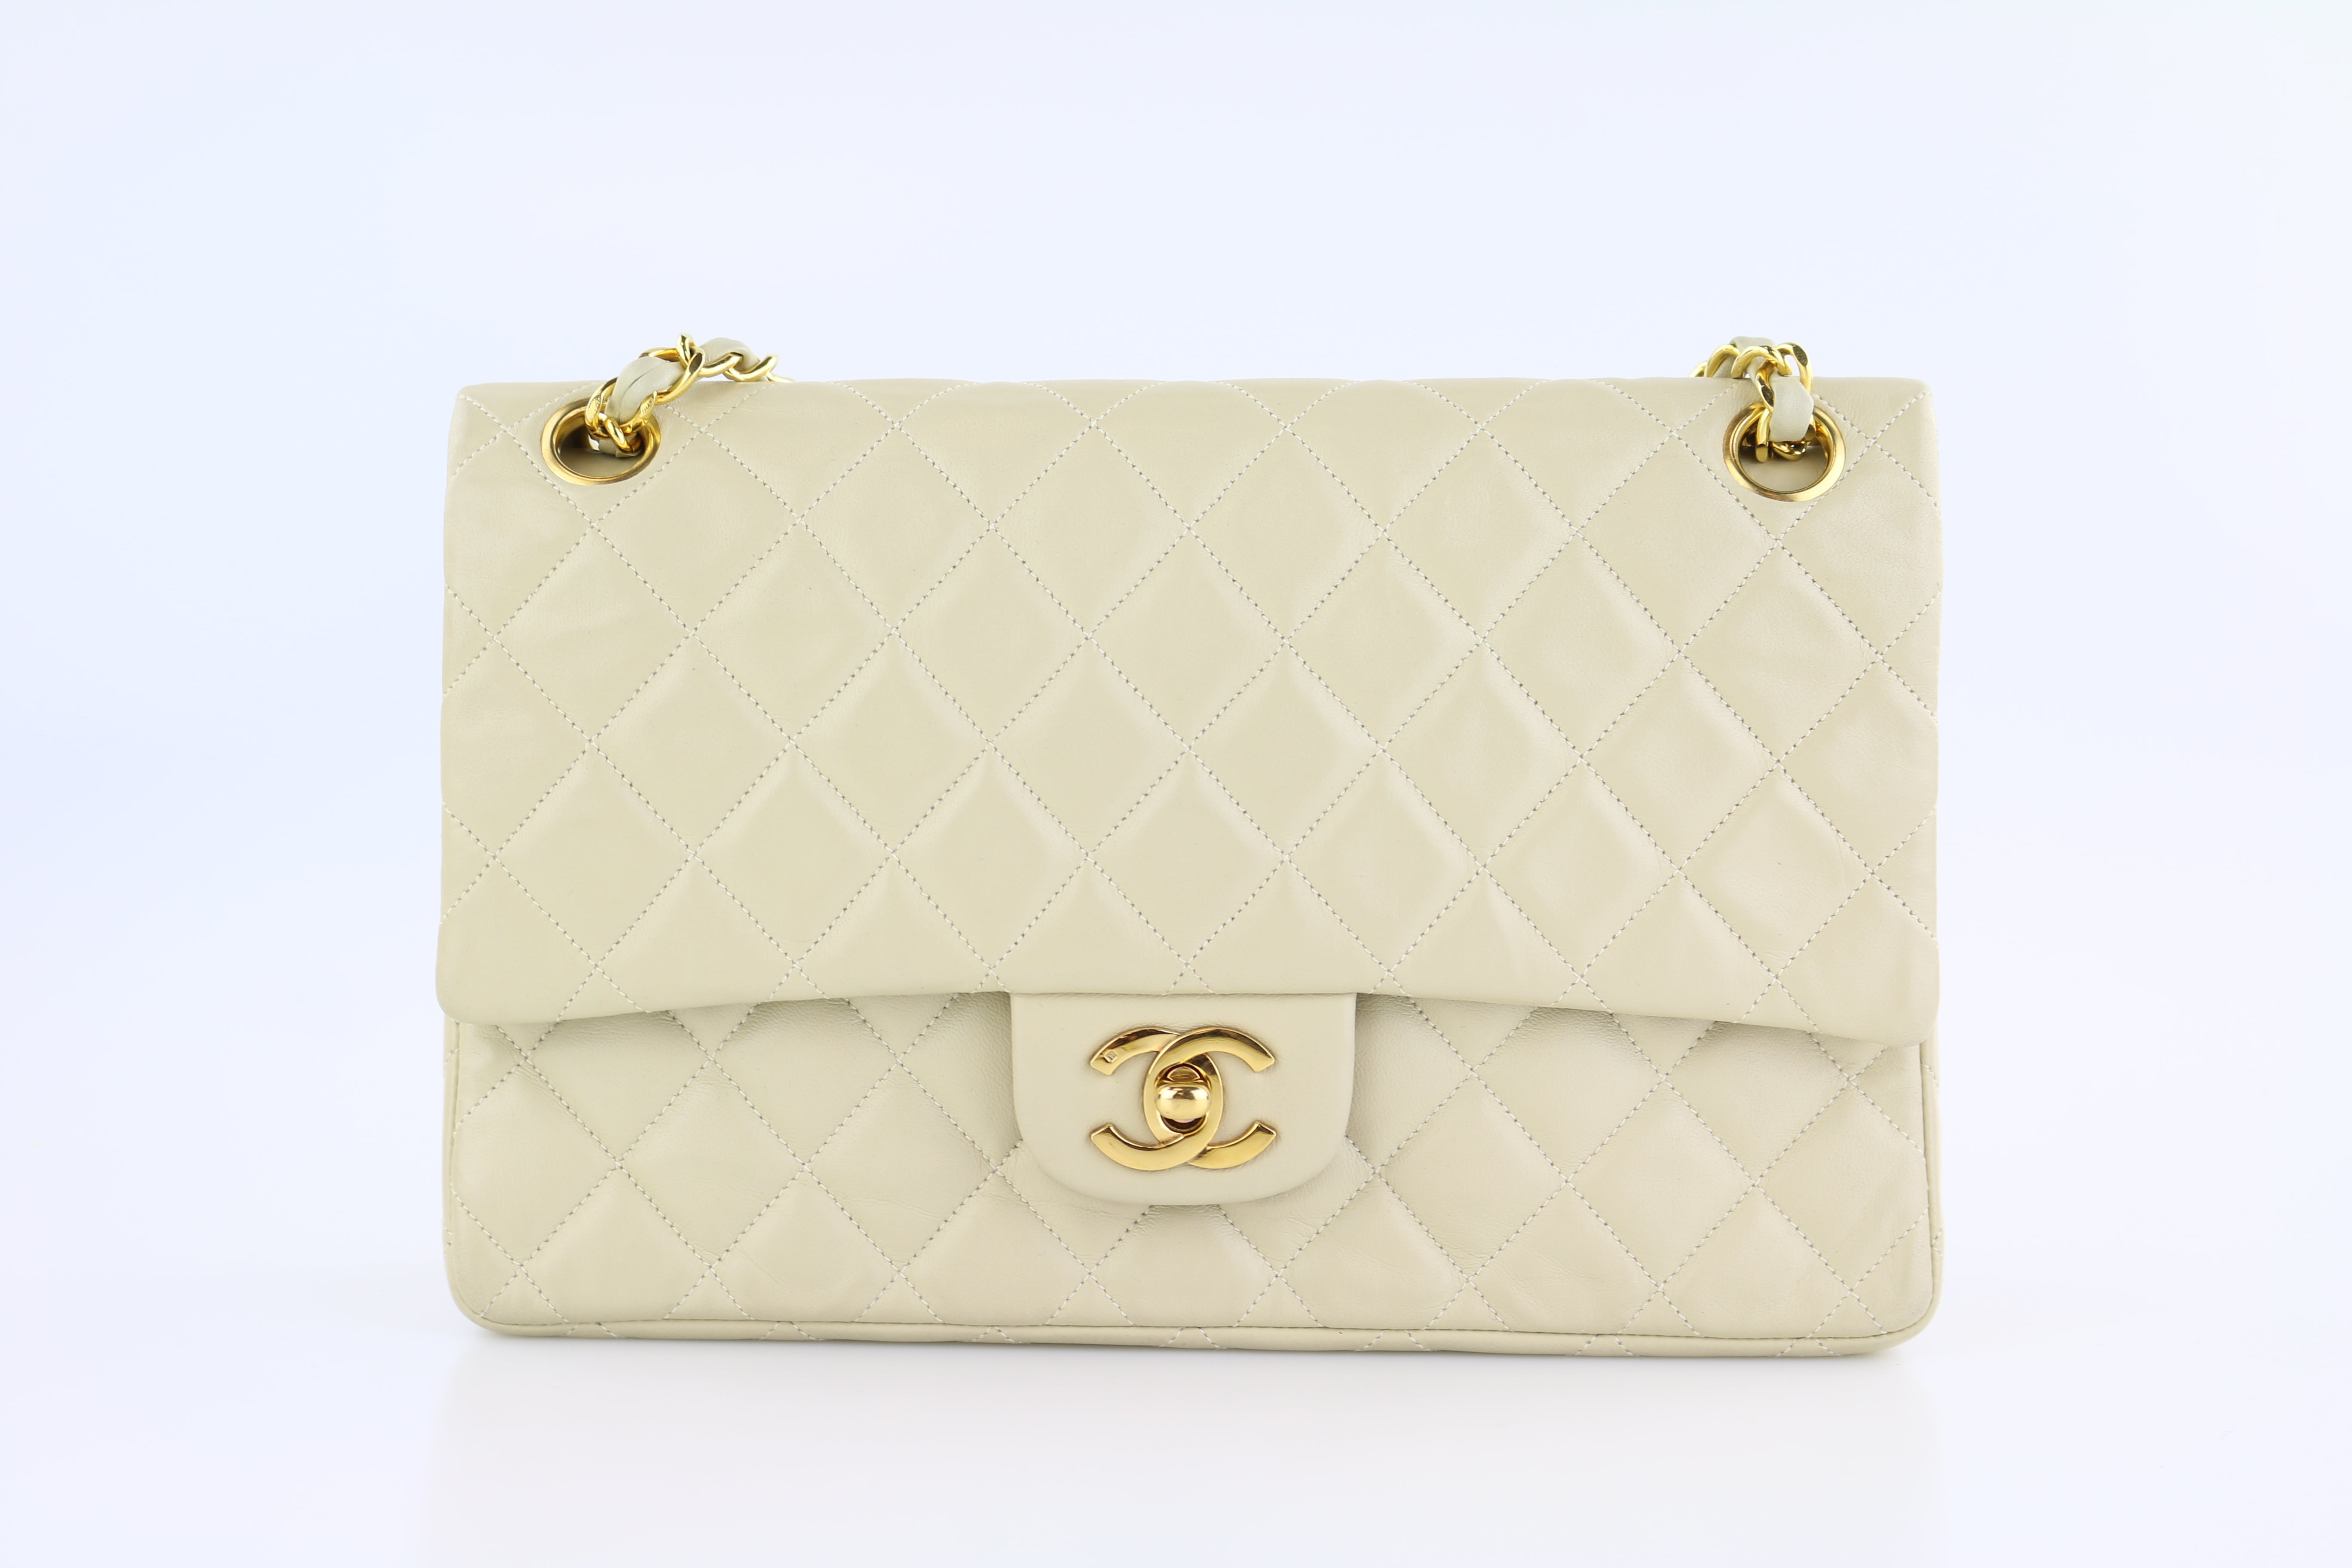 Beige Lambskin Medium Flap